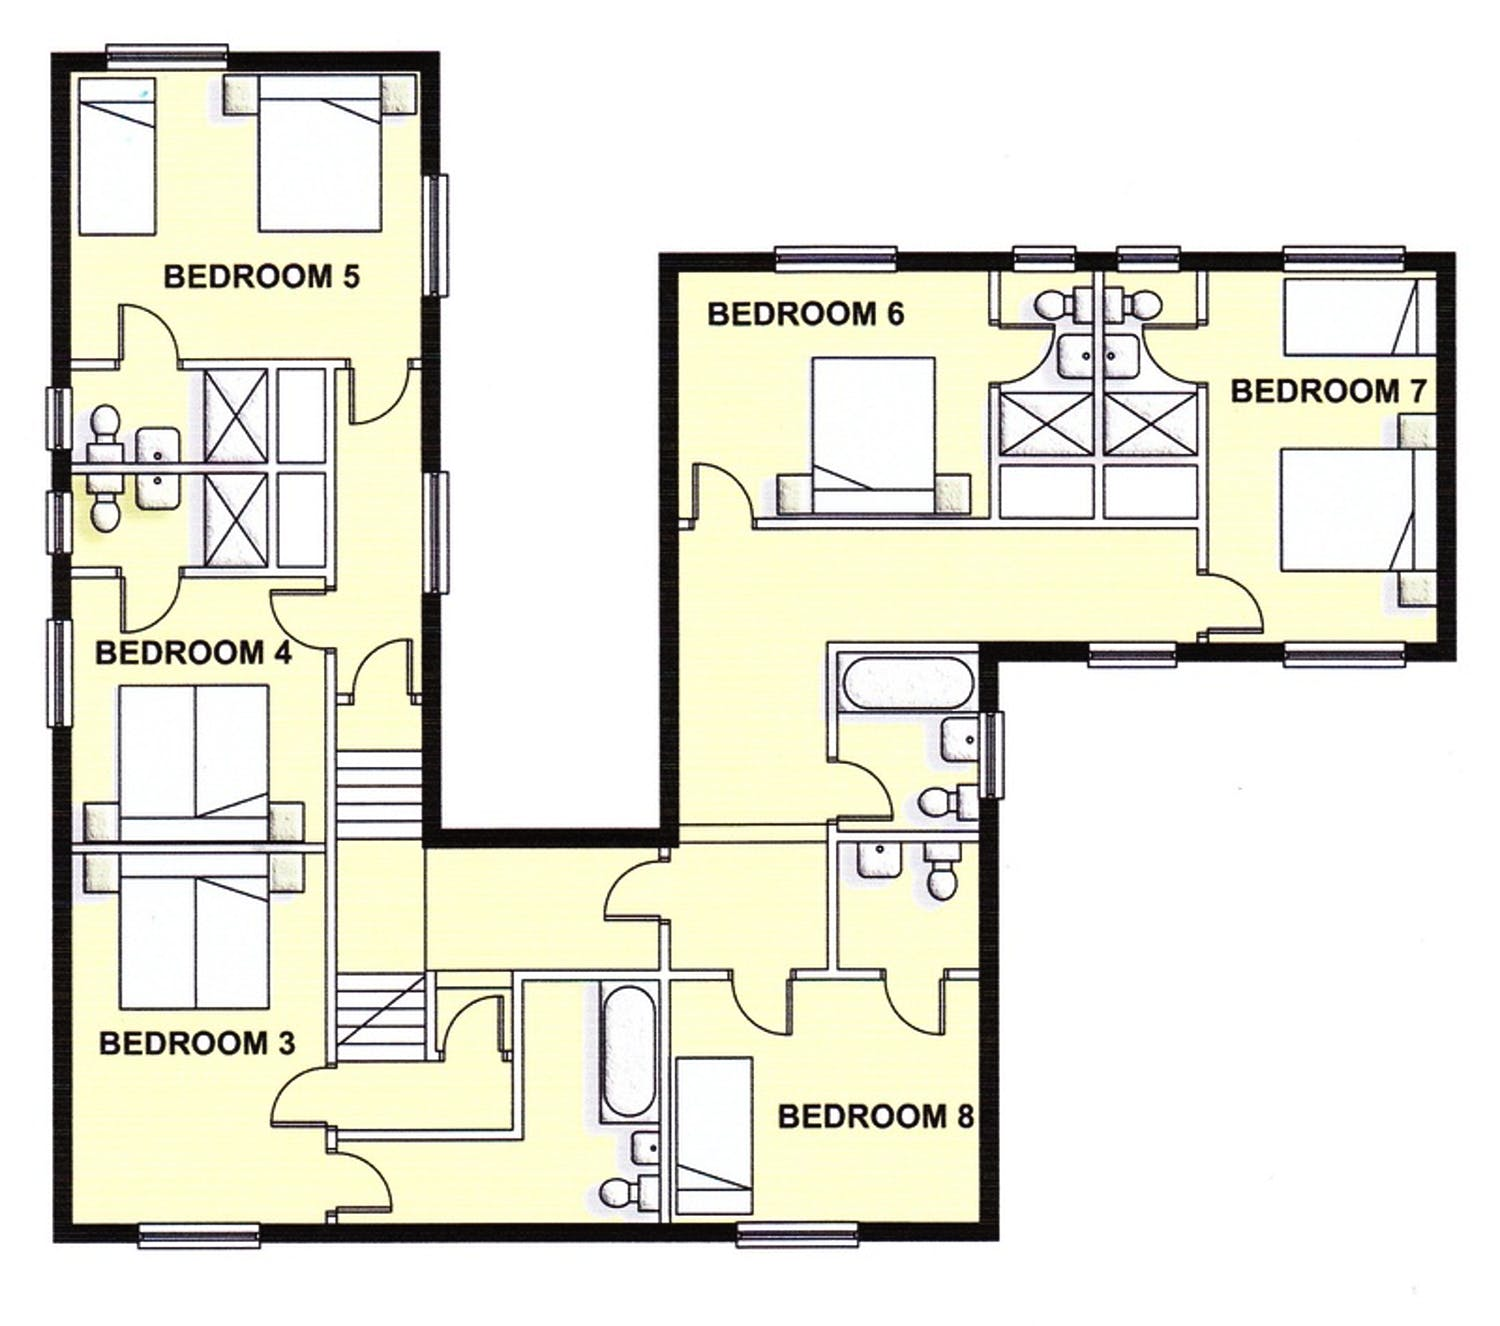 Floorplans viney hill country house gloucestershire for Country house plans uk